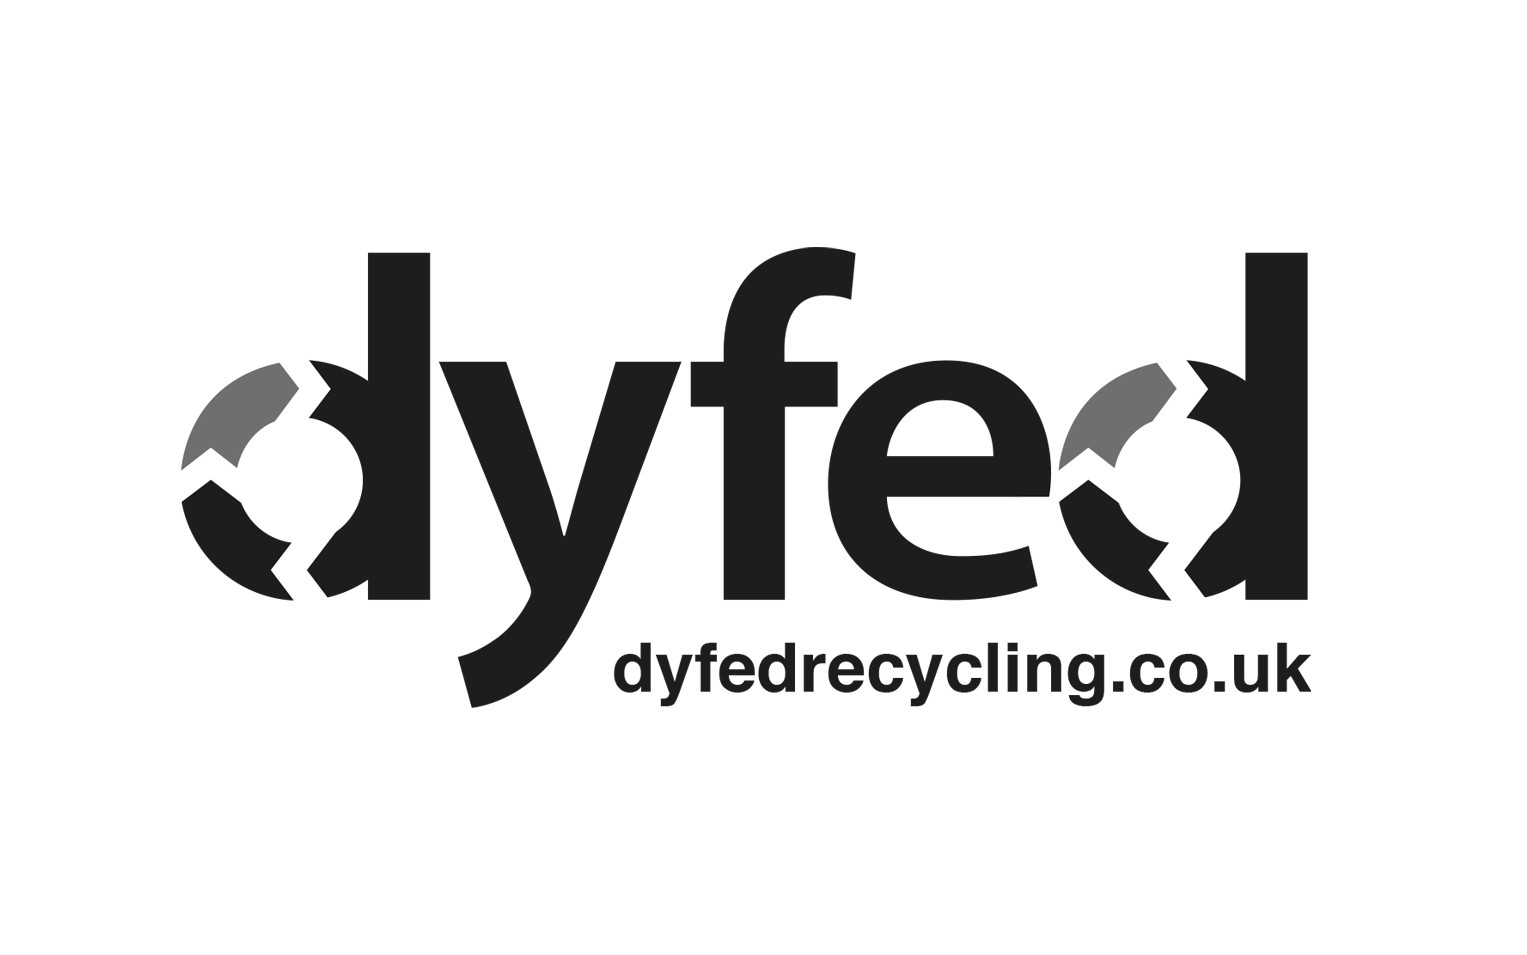 DYFED RECYCLING